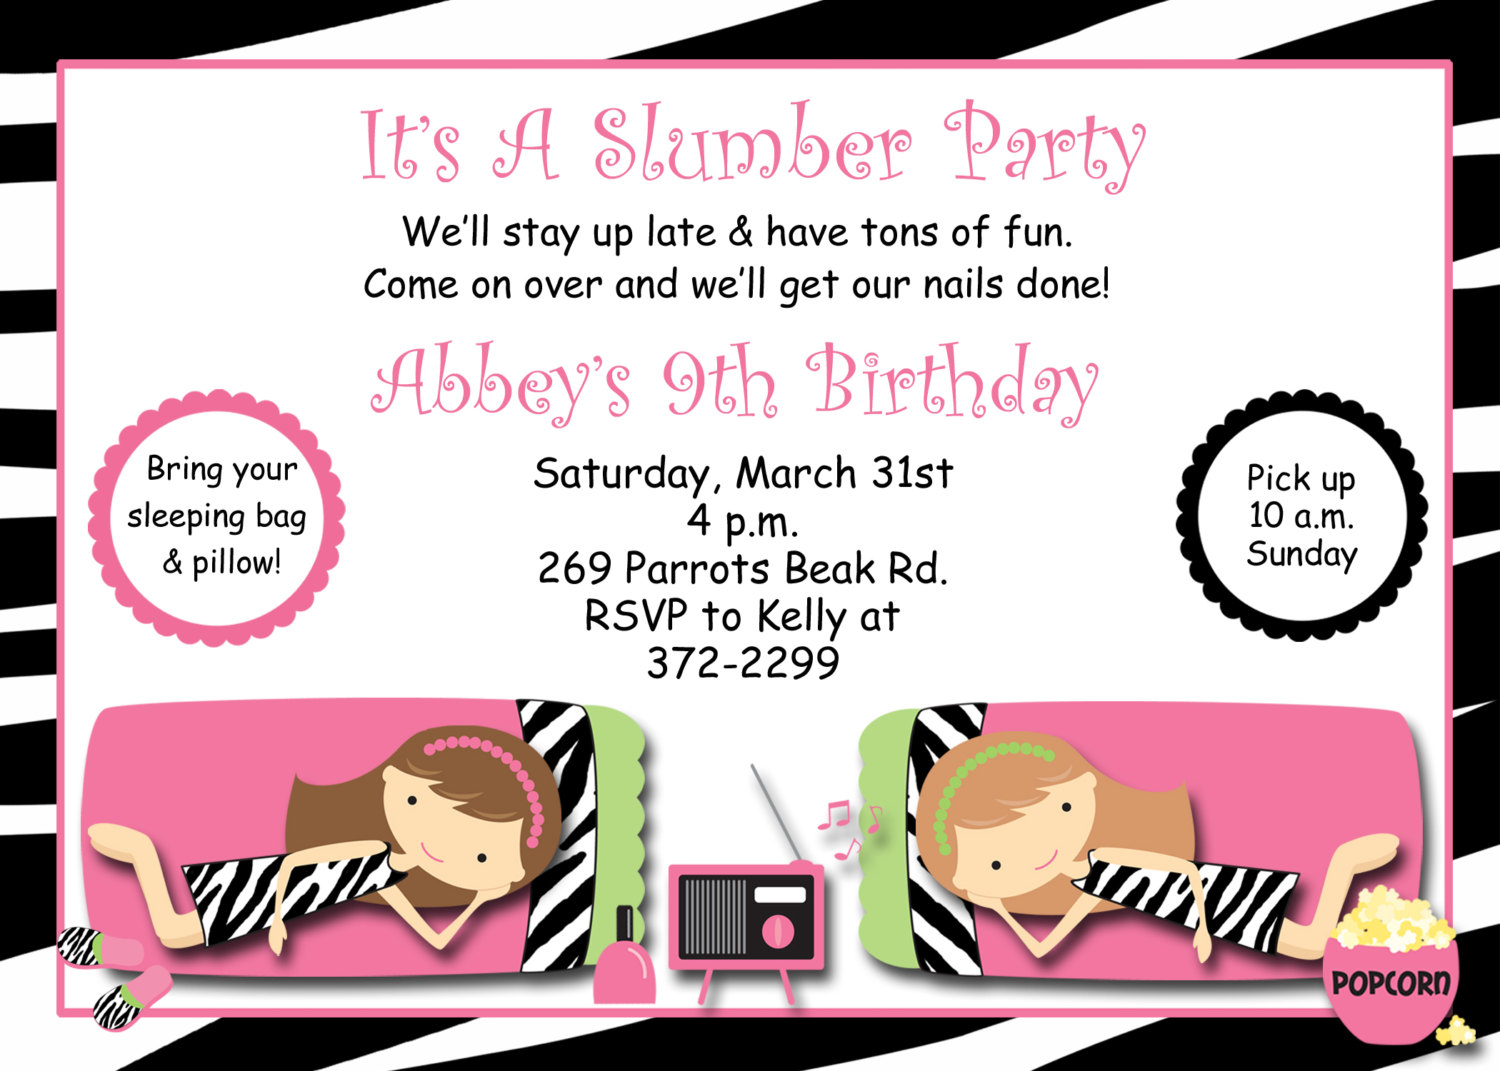 free printable birthday sleepover invitation templates ; bcd8b626859d88ddc1145f047182abb9